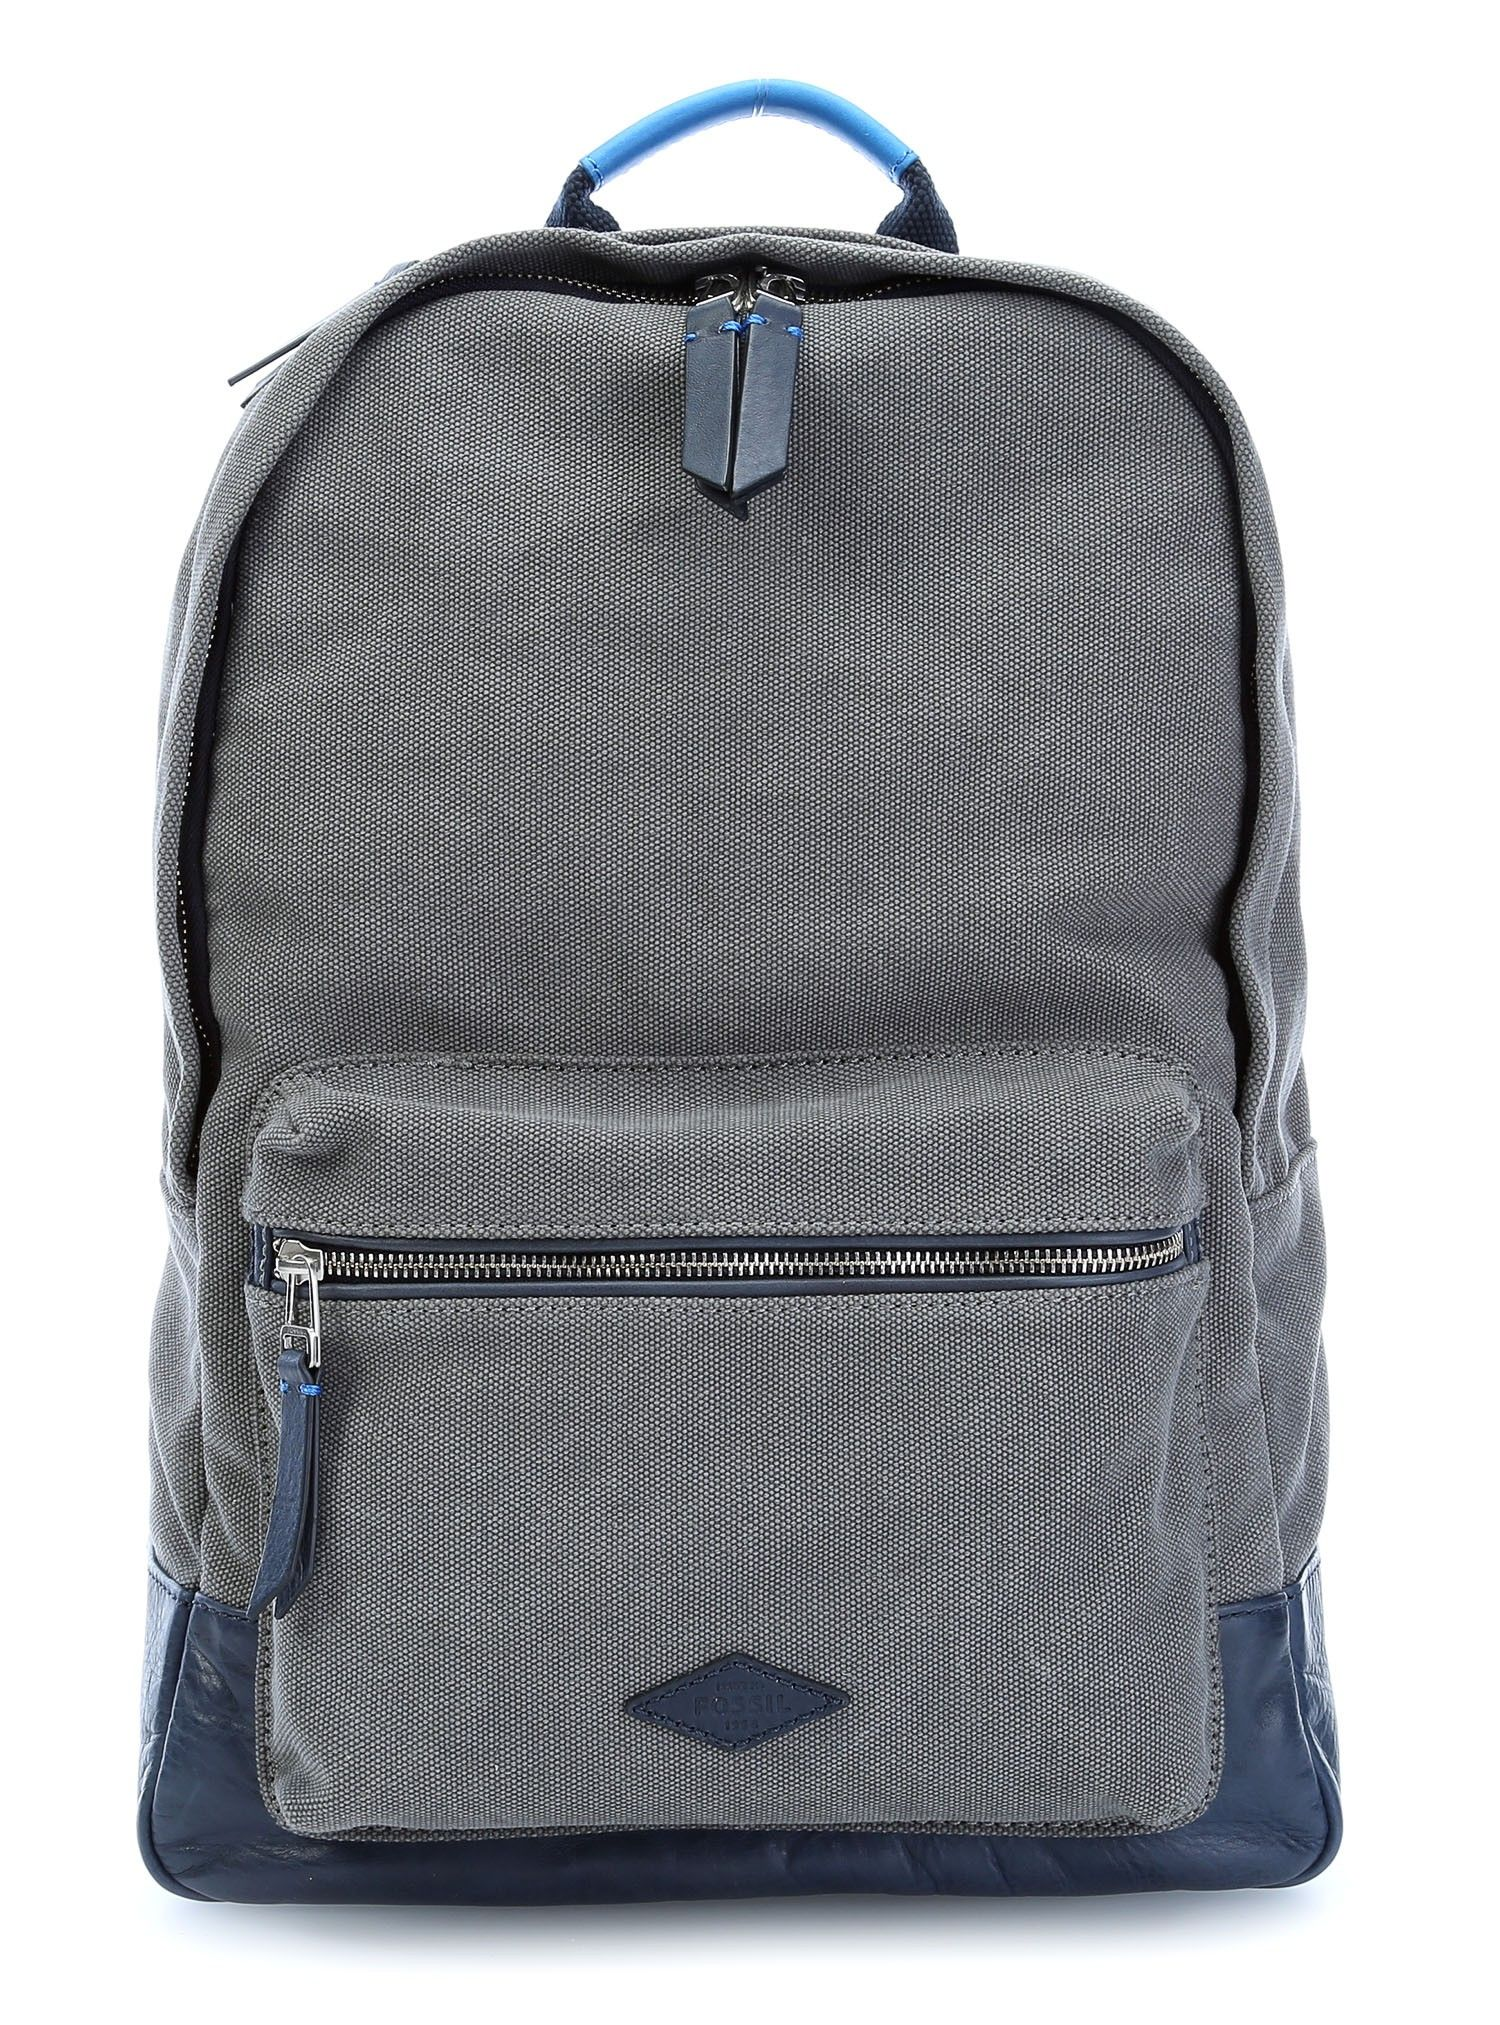 81eb4e6100412 wardow.com -  backpack  trend  bag  fashion  AmsterdamCowboys Portree 13    Laptop-Rucksack genarbtes Rindsleder stein